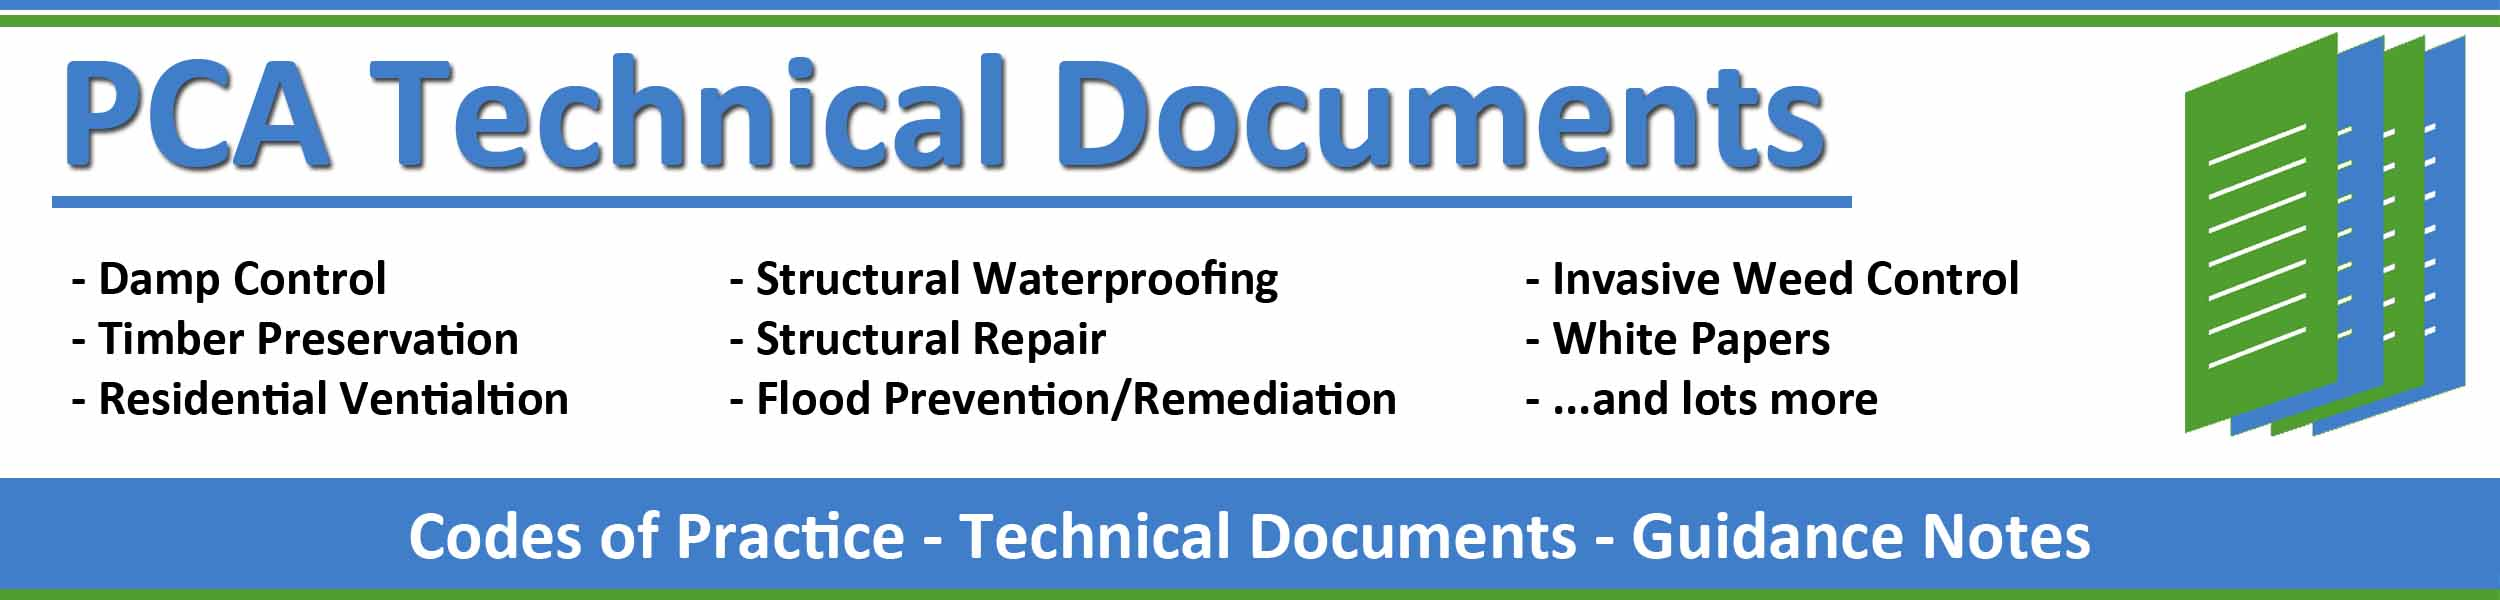 PCA Technical Document Library